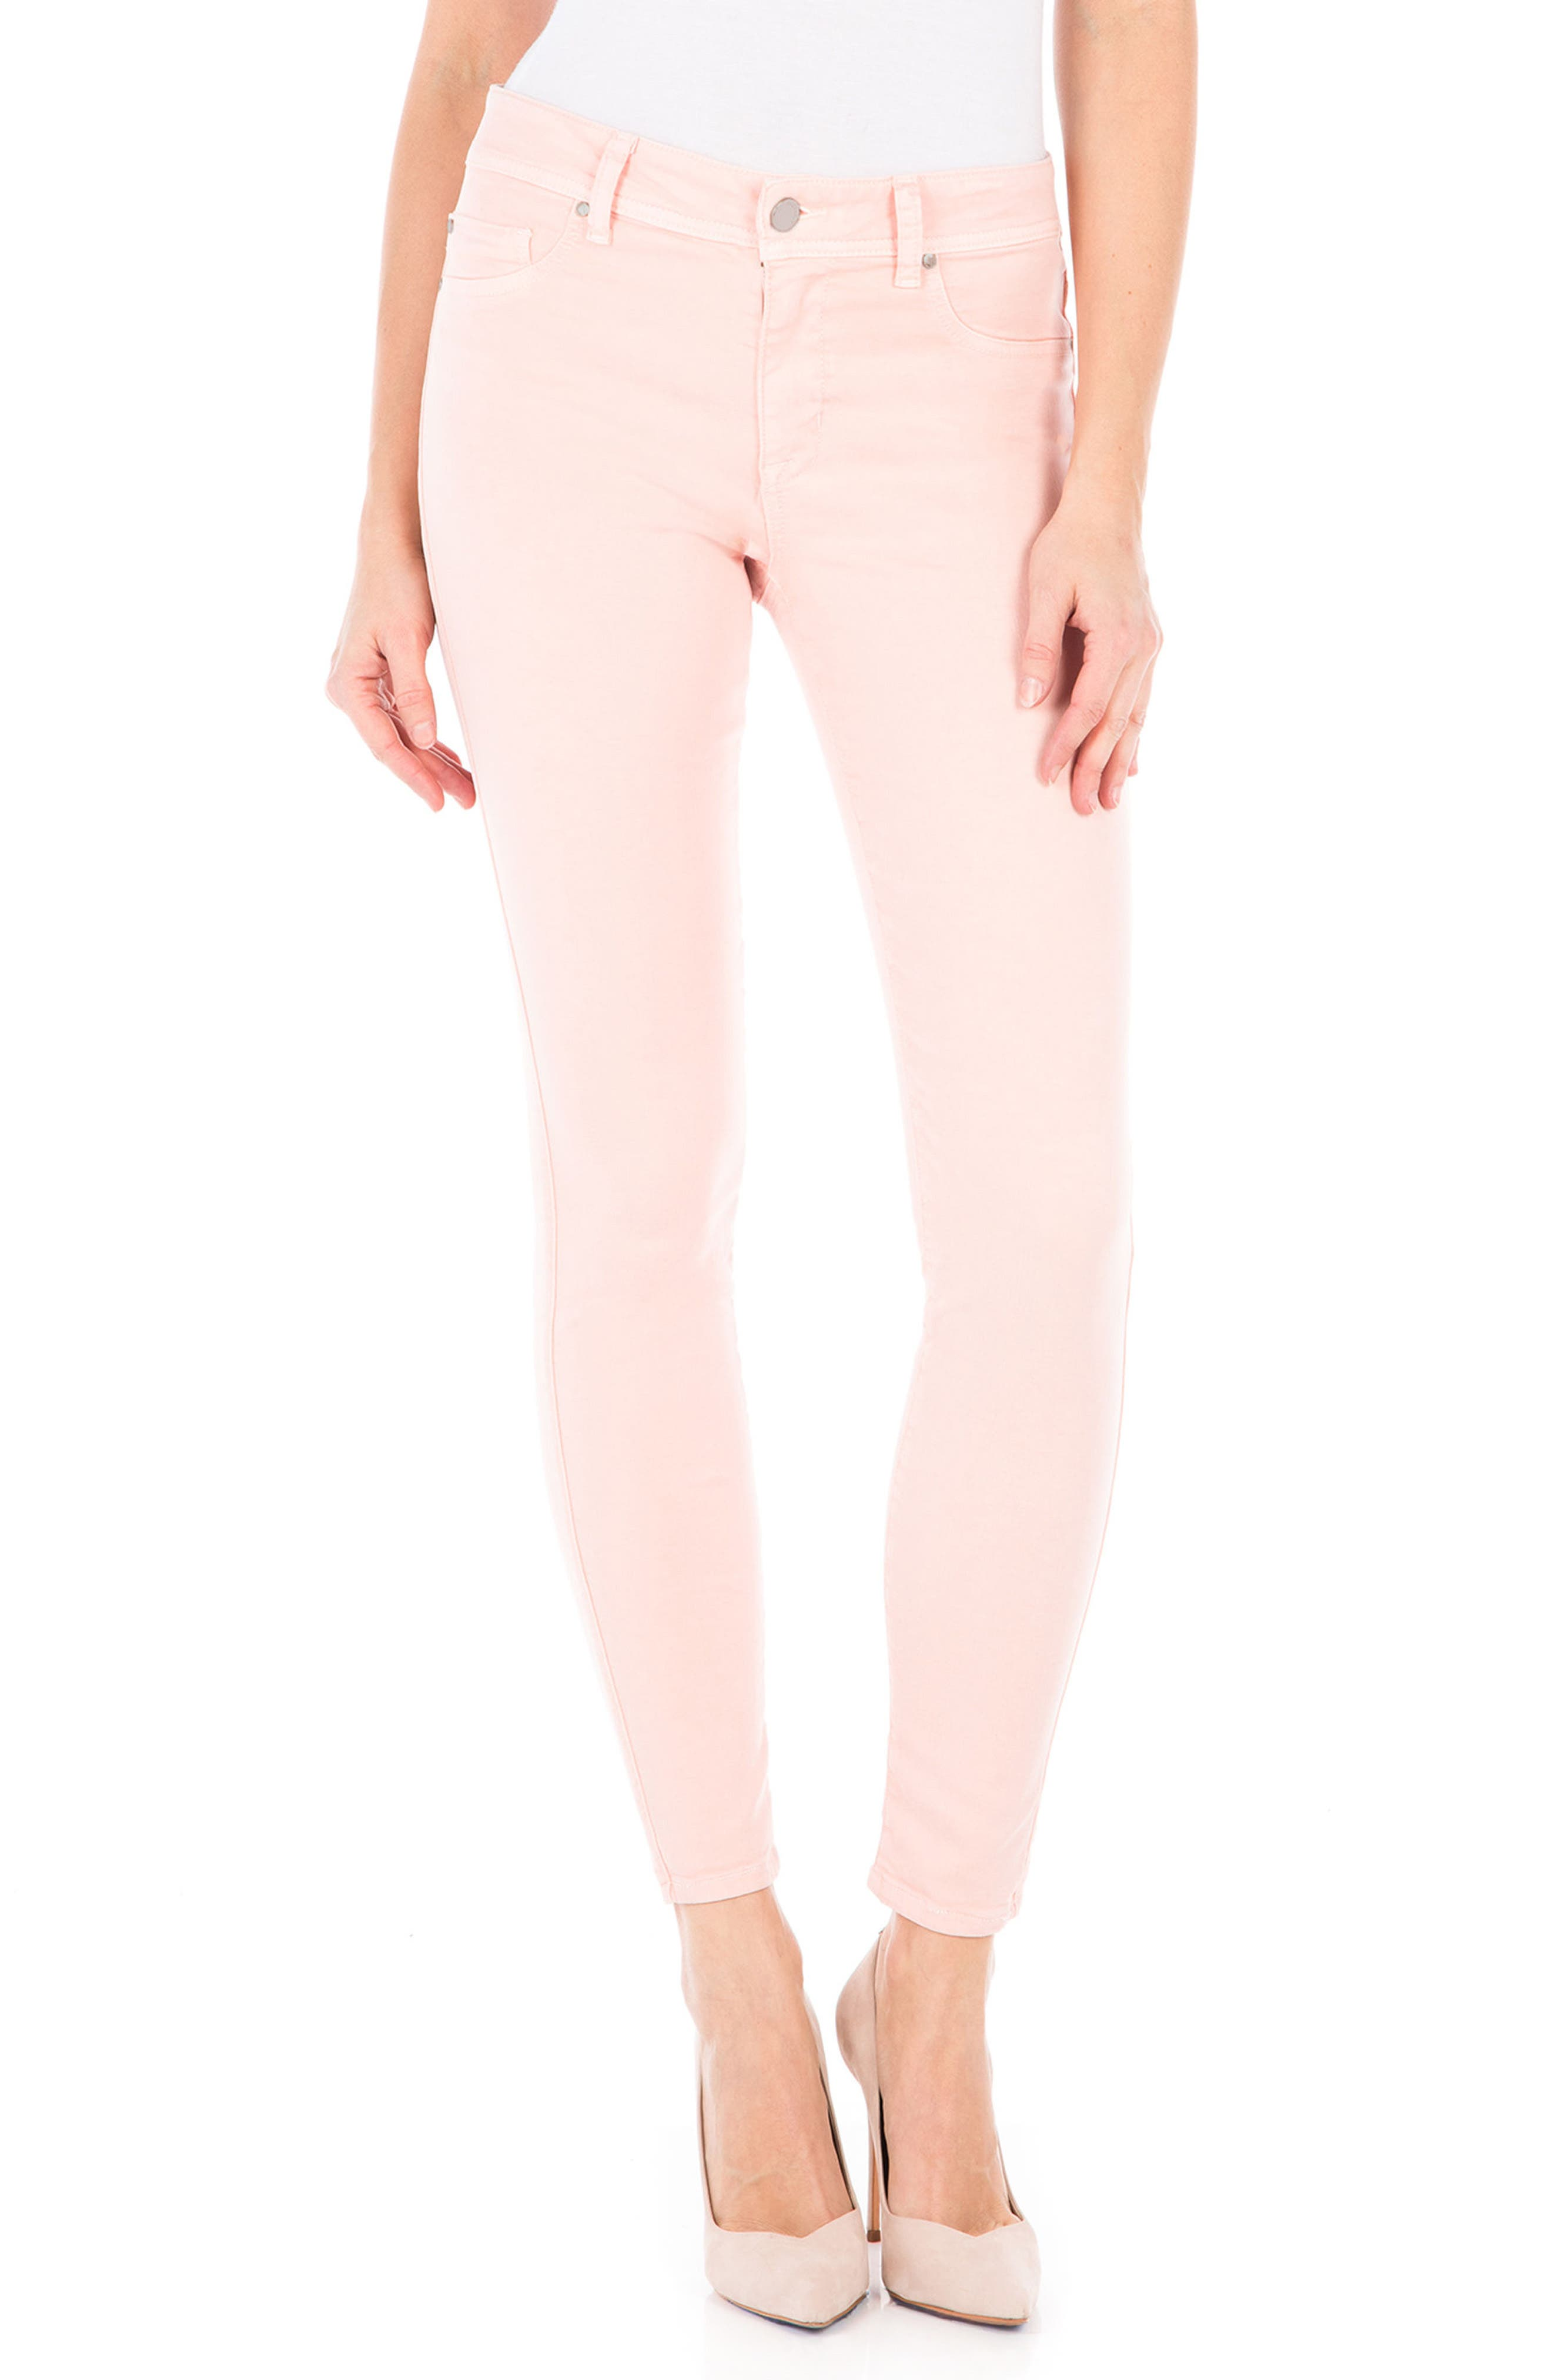 Sola Skinny Jeans,                         Main,                         color, 650